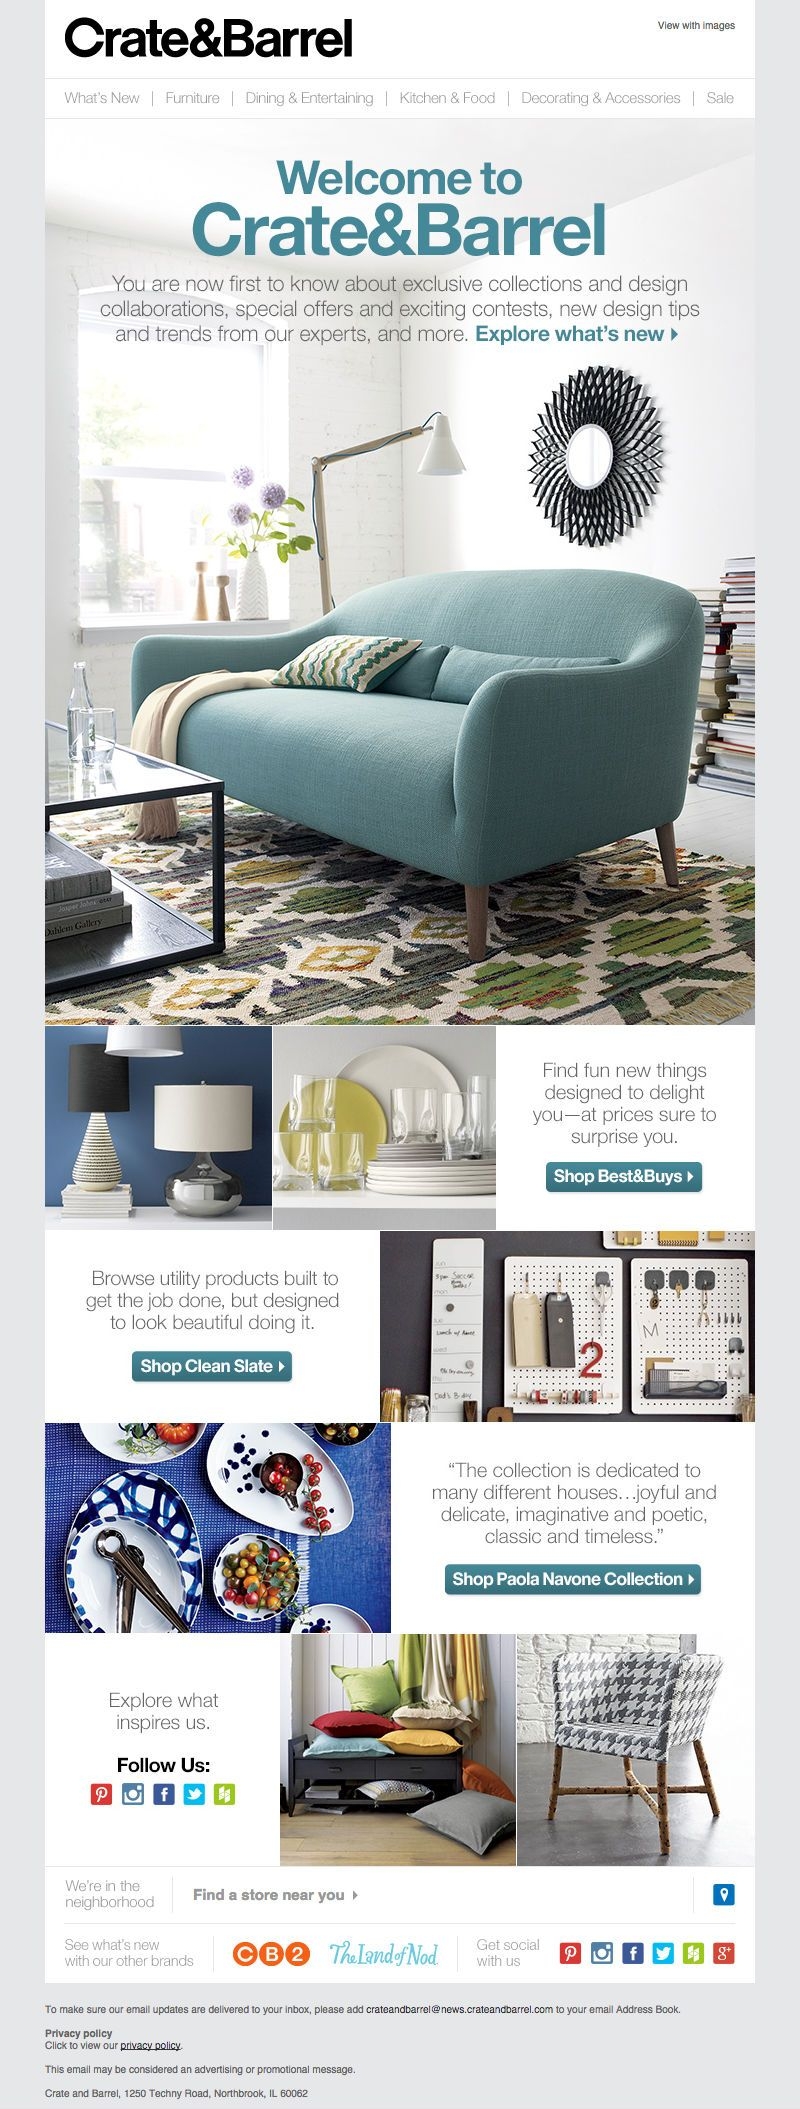 House & Garden ecommerce newsletter - good email example #email #design #newsletter #emaildesign #newsletterdesign #inspiration #furniture